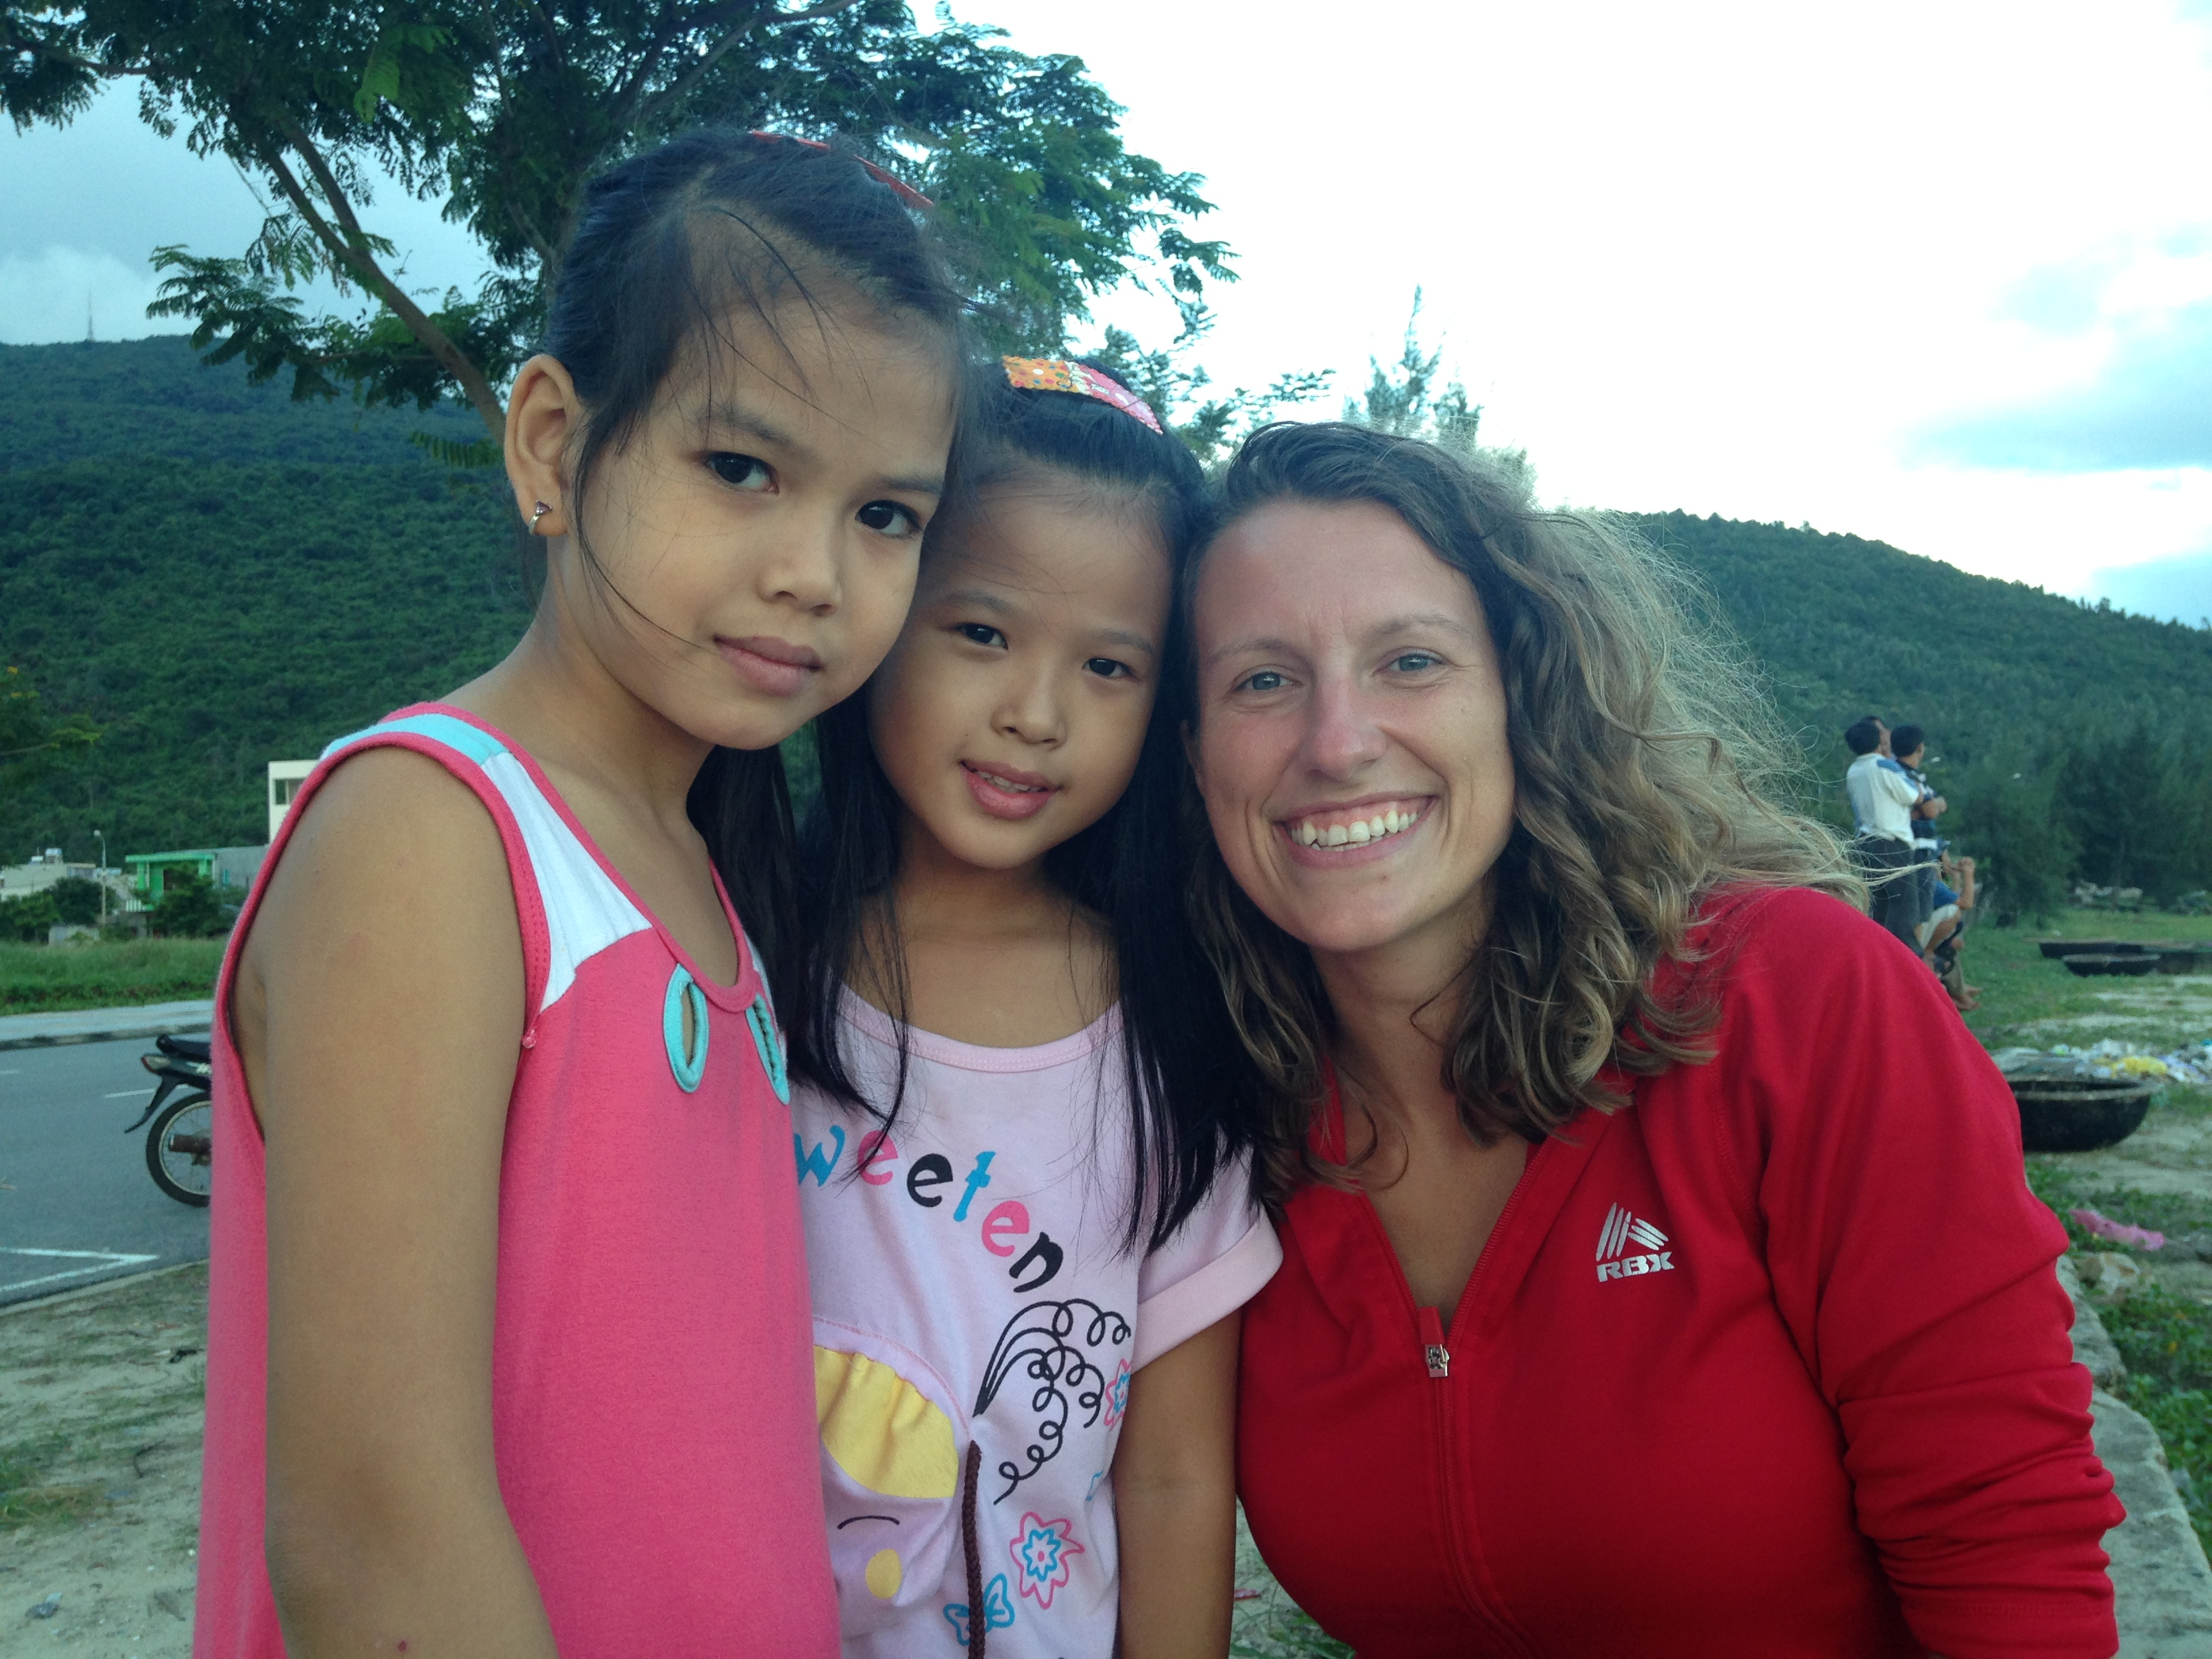 Katie hoped to couchsurf more during her time in Vietnam, but she was still able to connect with locals during her time there.